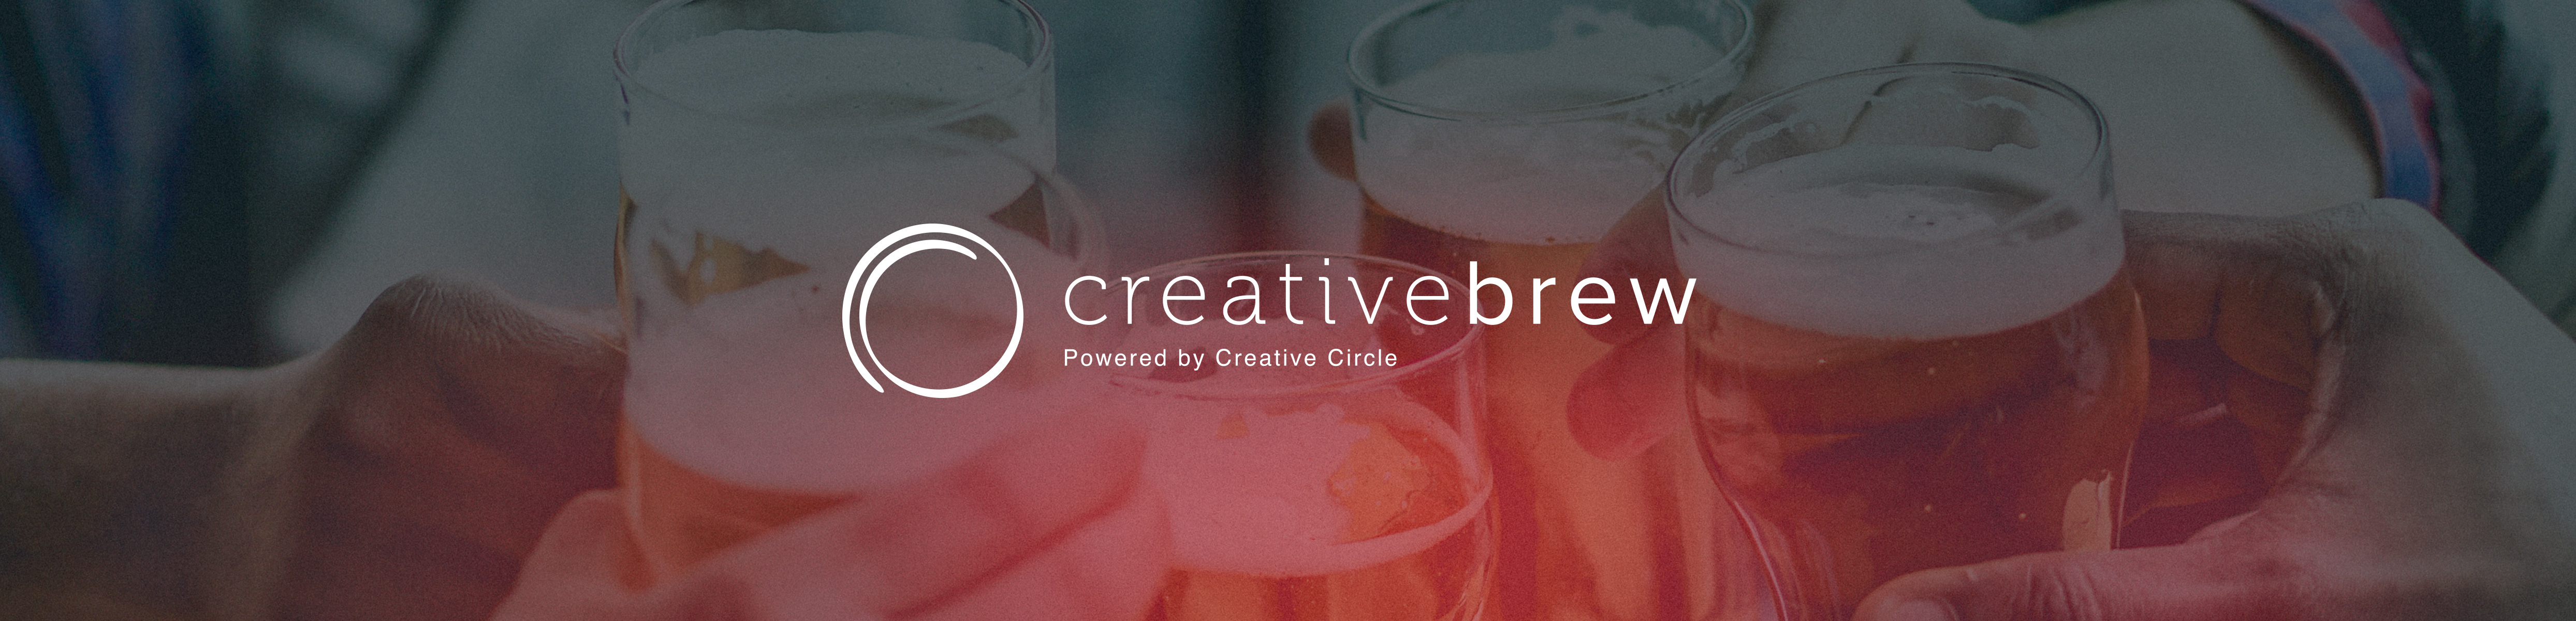 Creative Brew Header